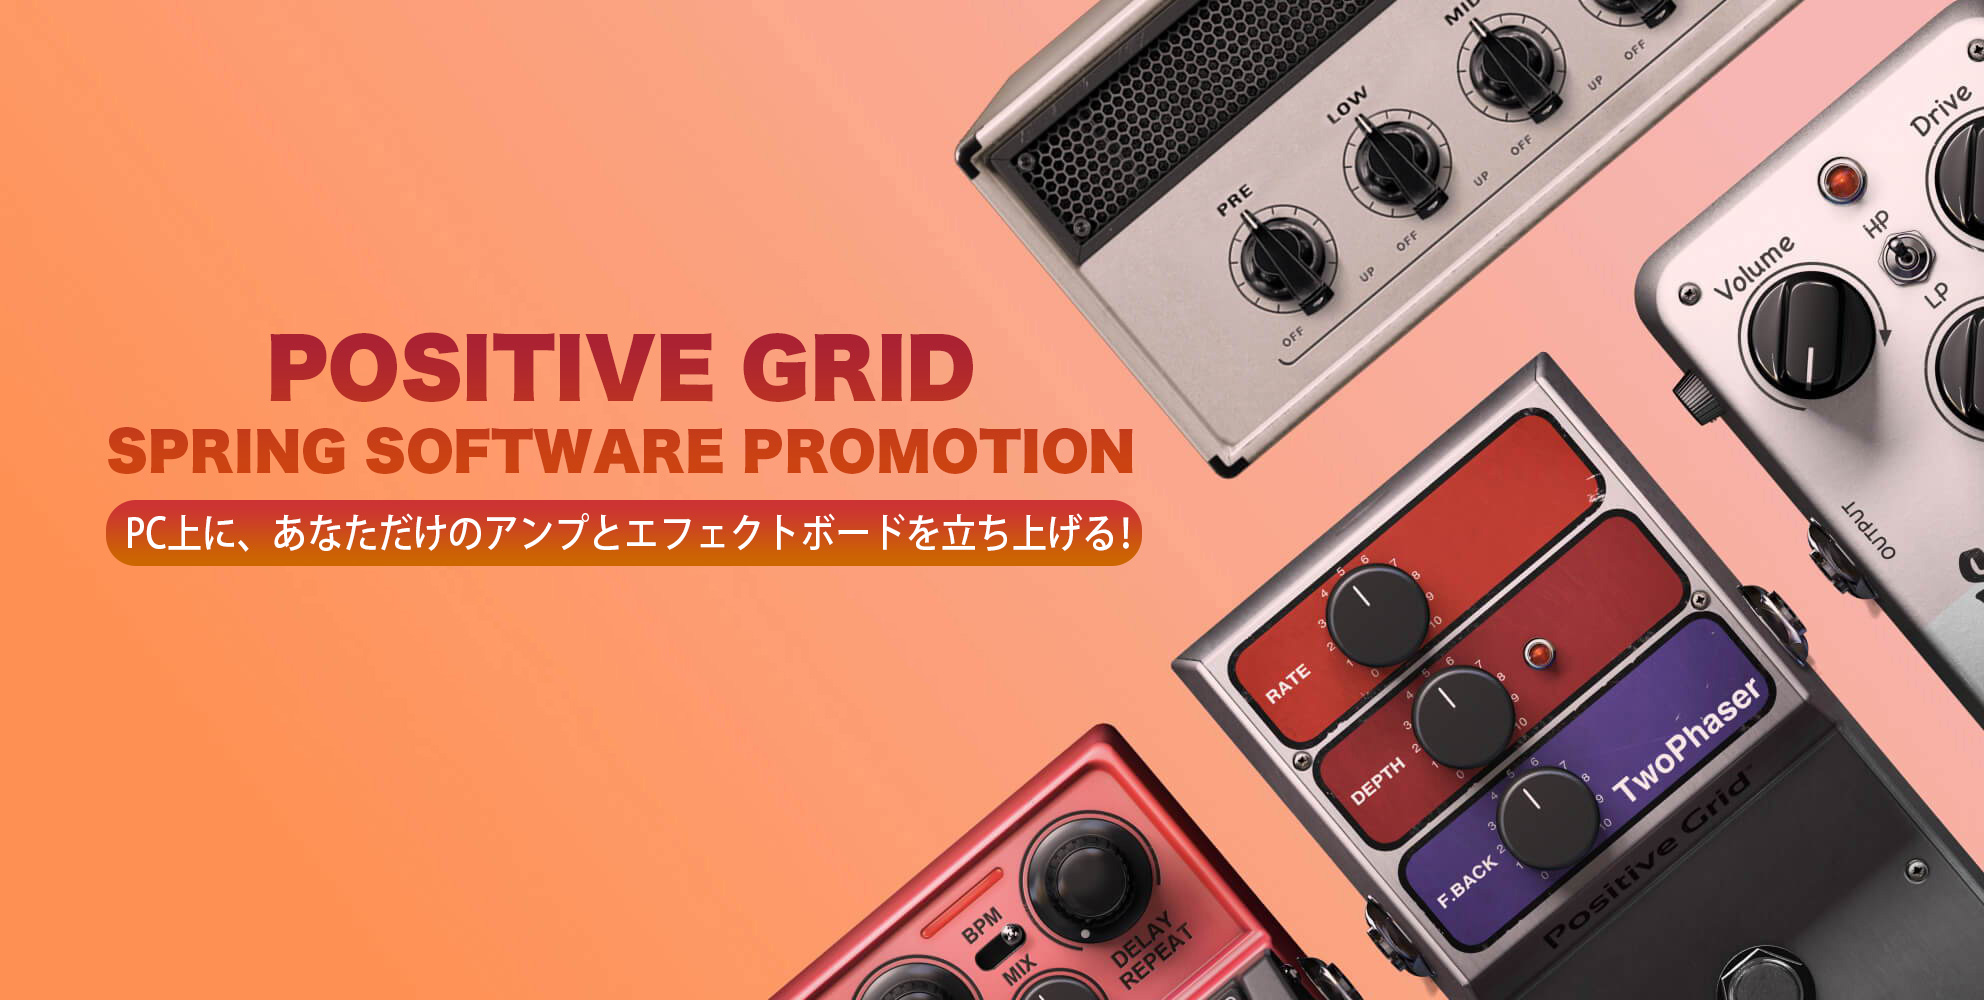 Positive Grid Software Promotion